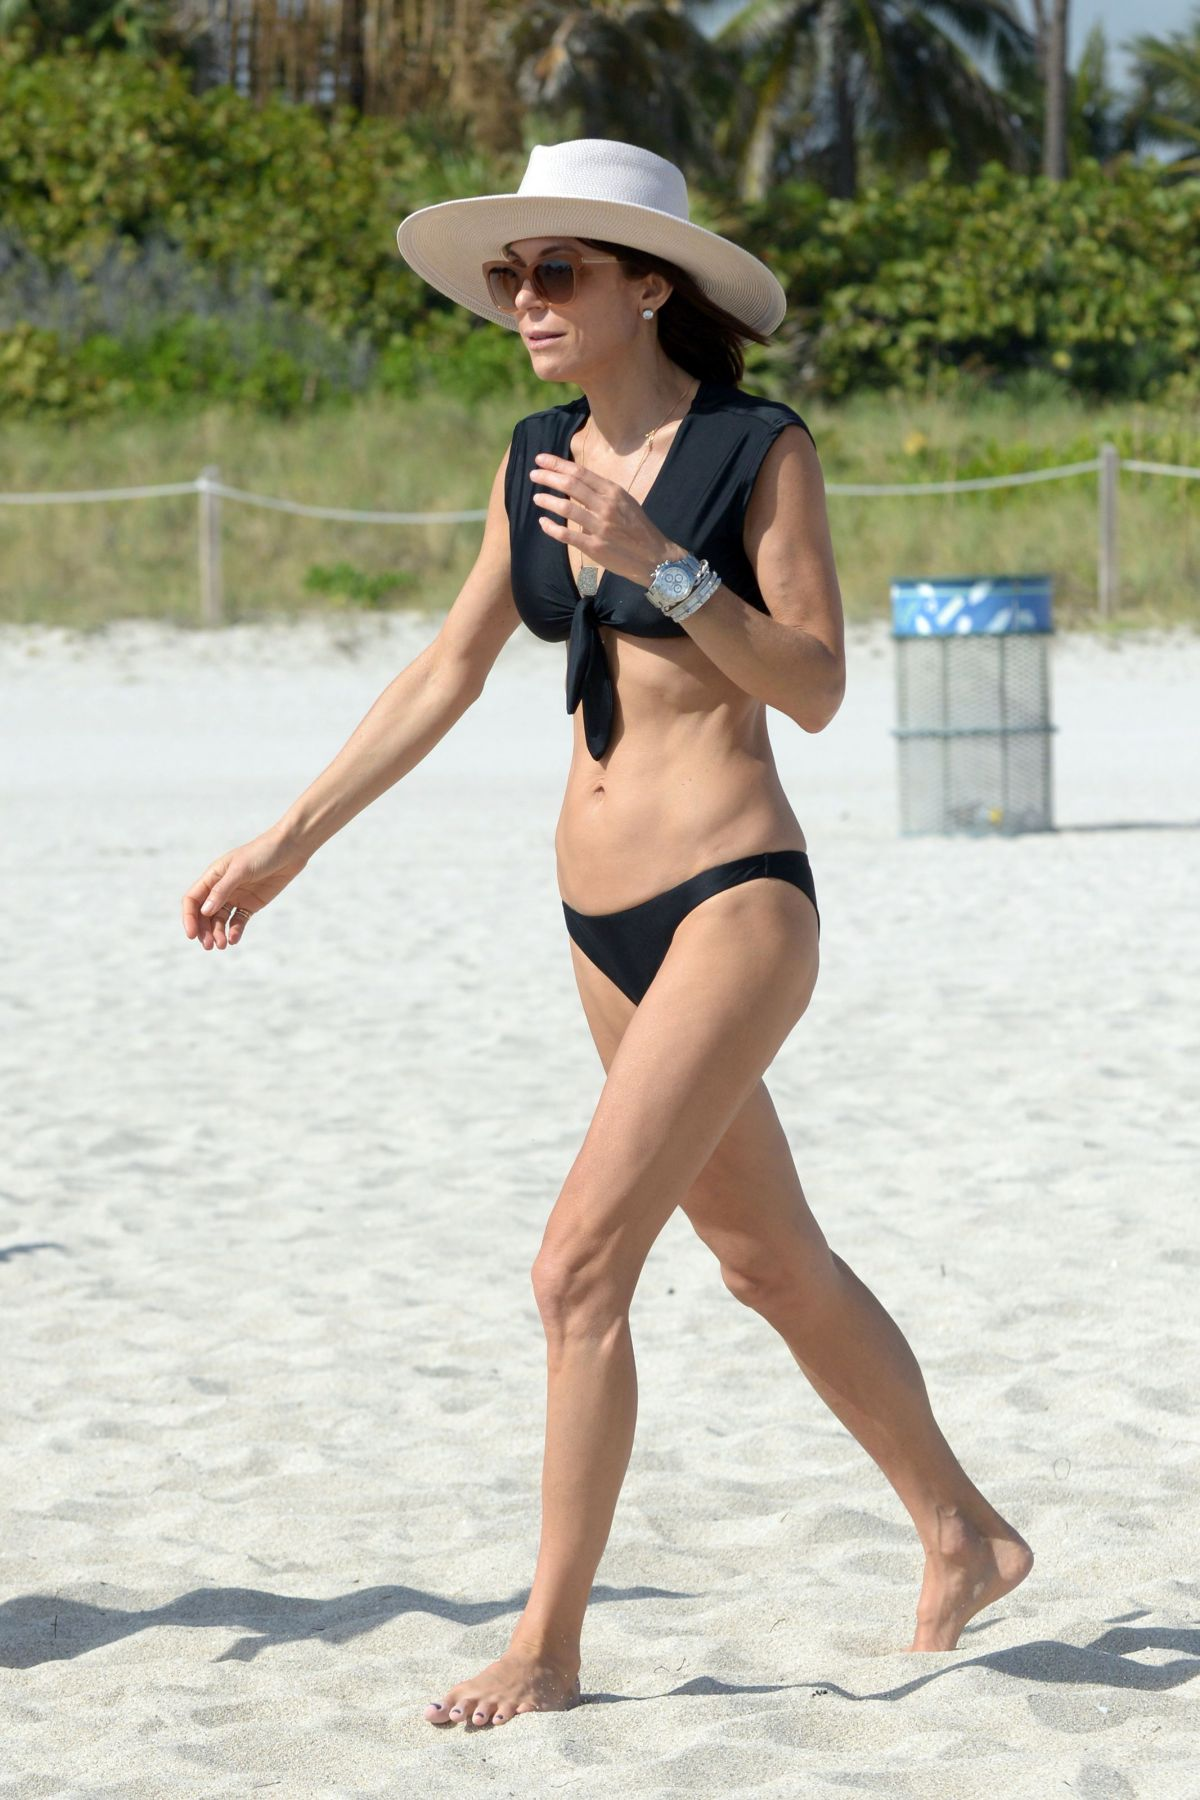 BETHENNY FRANKEL in Bikini on the Beach in Miami 12/05/2016   bethenny-frankel-in-bikini-on-the-beach-in-miami-12-05-2016_28